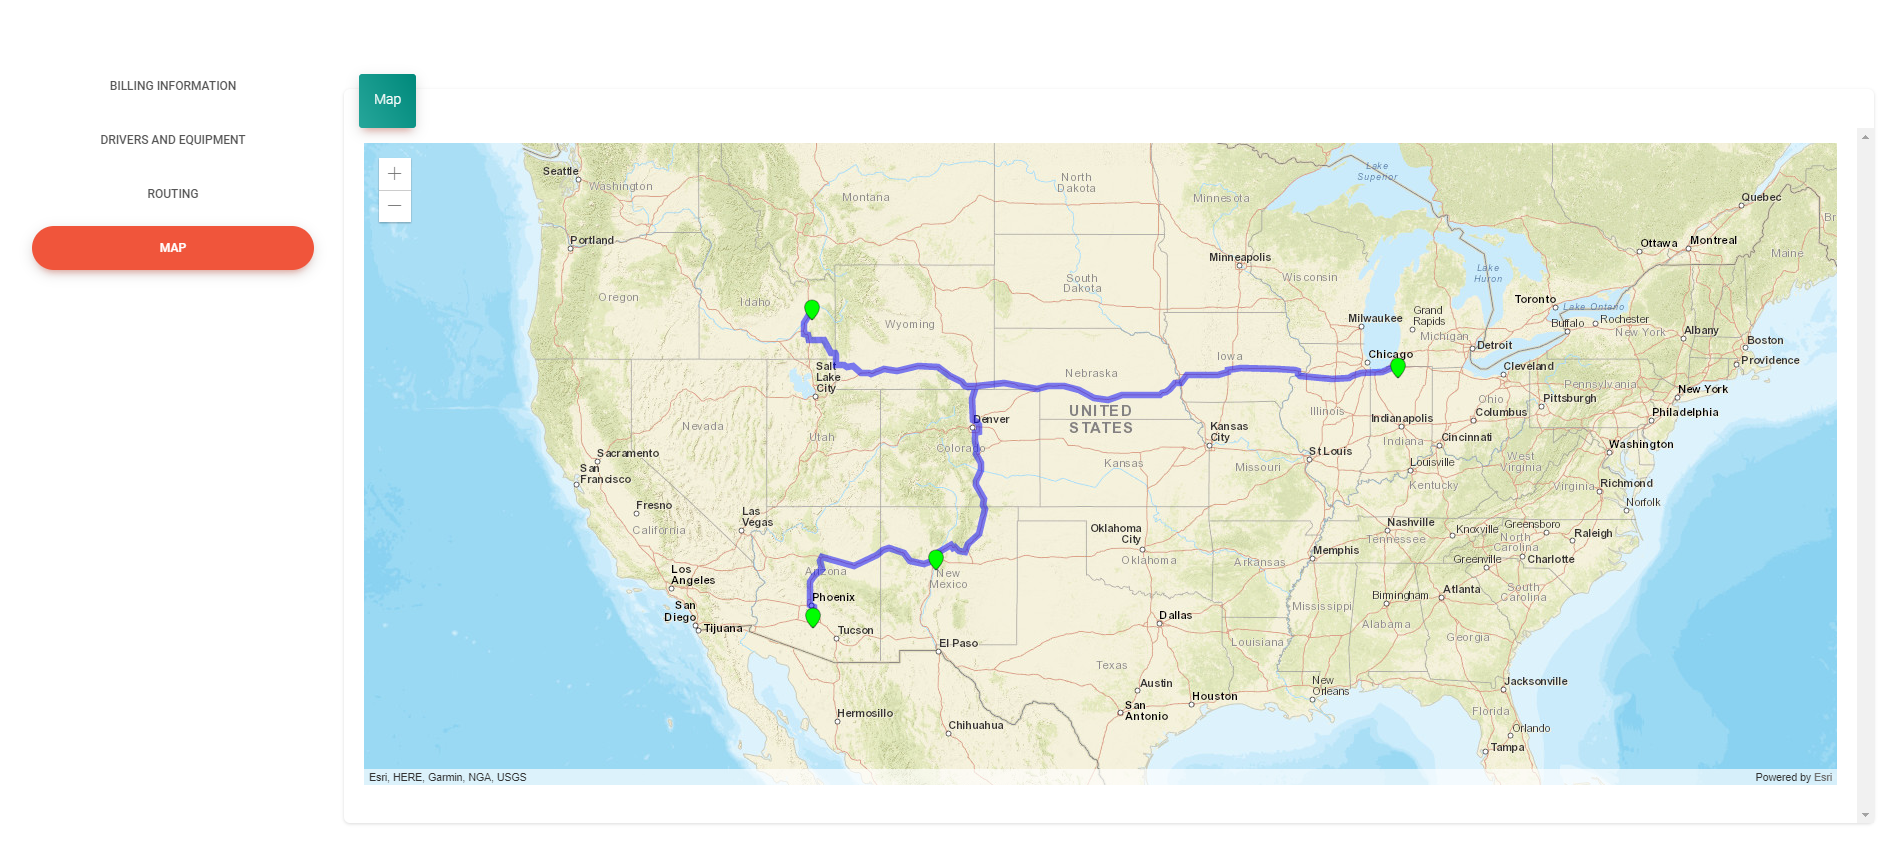 Map shows the routing of all pickup and drop off locations